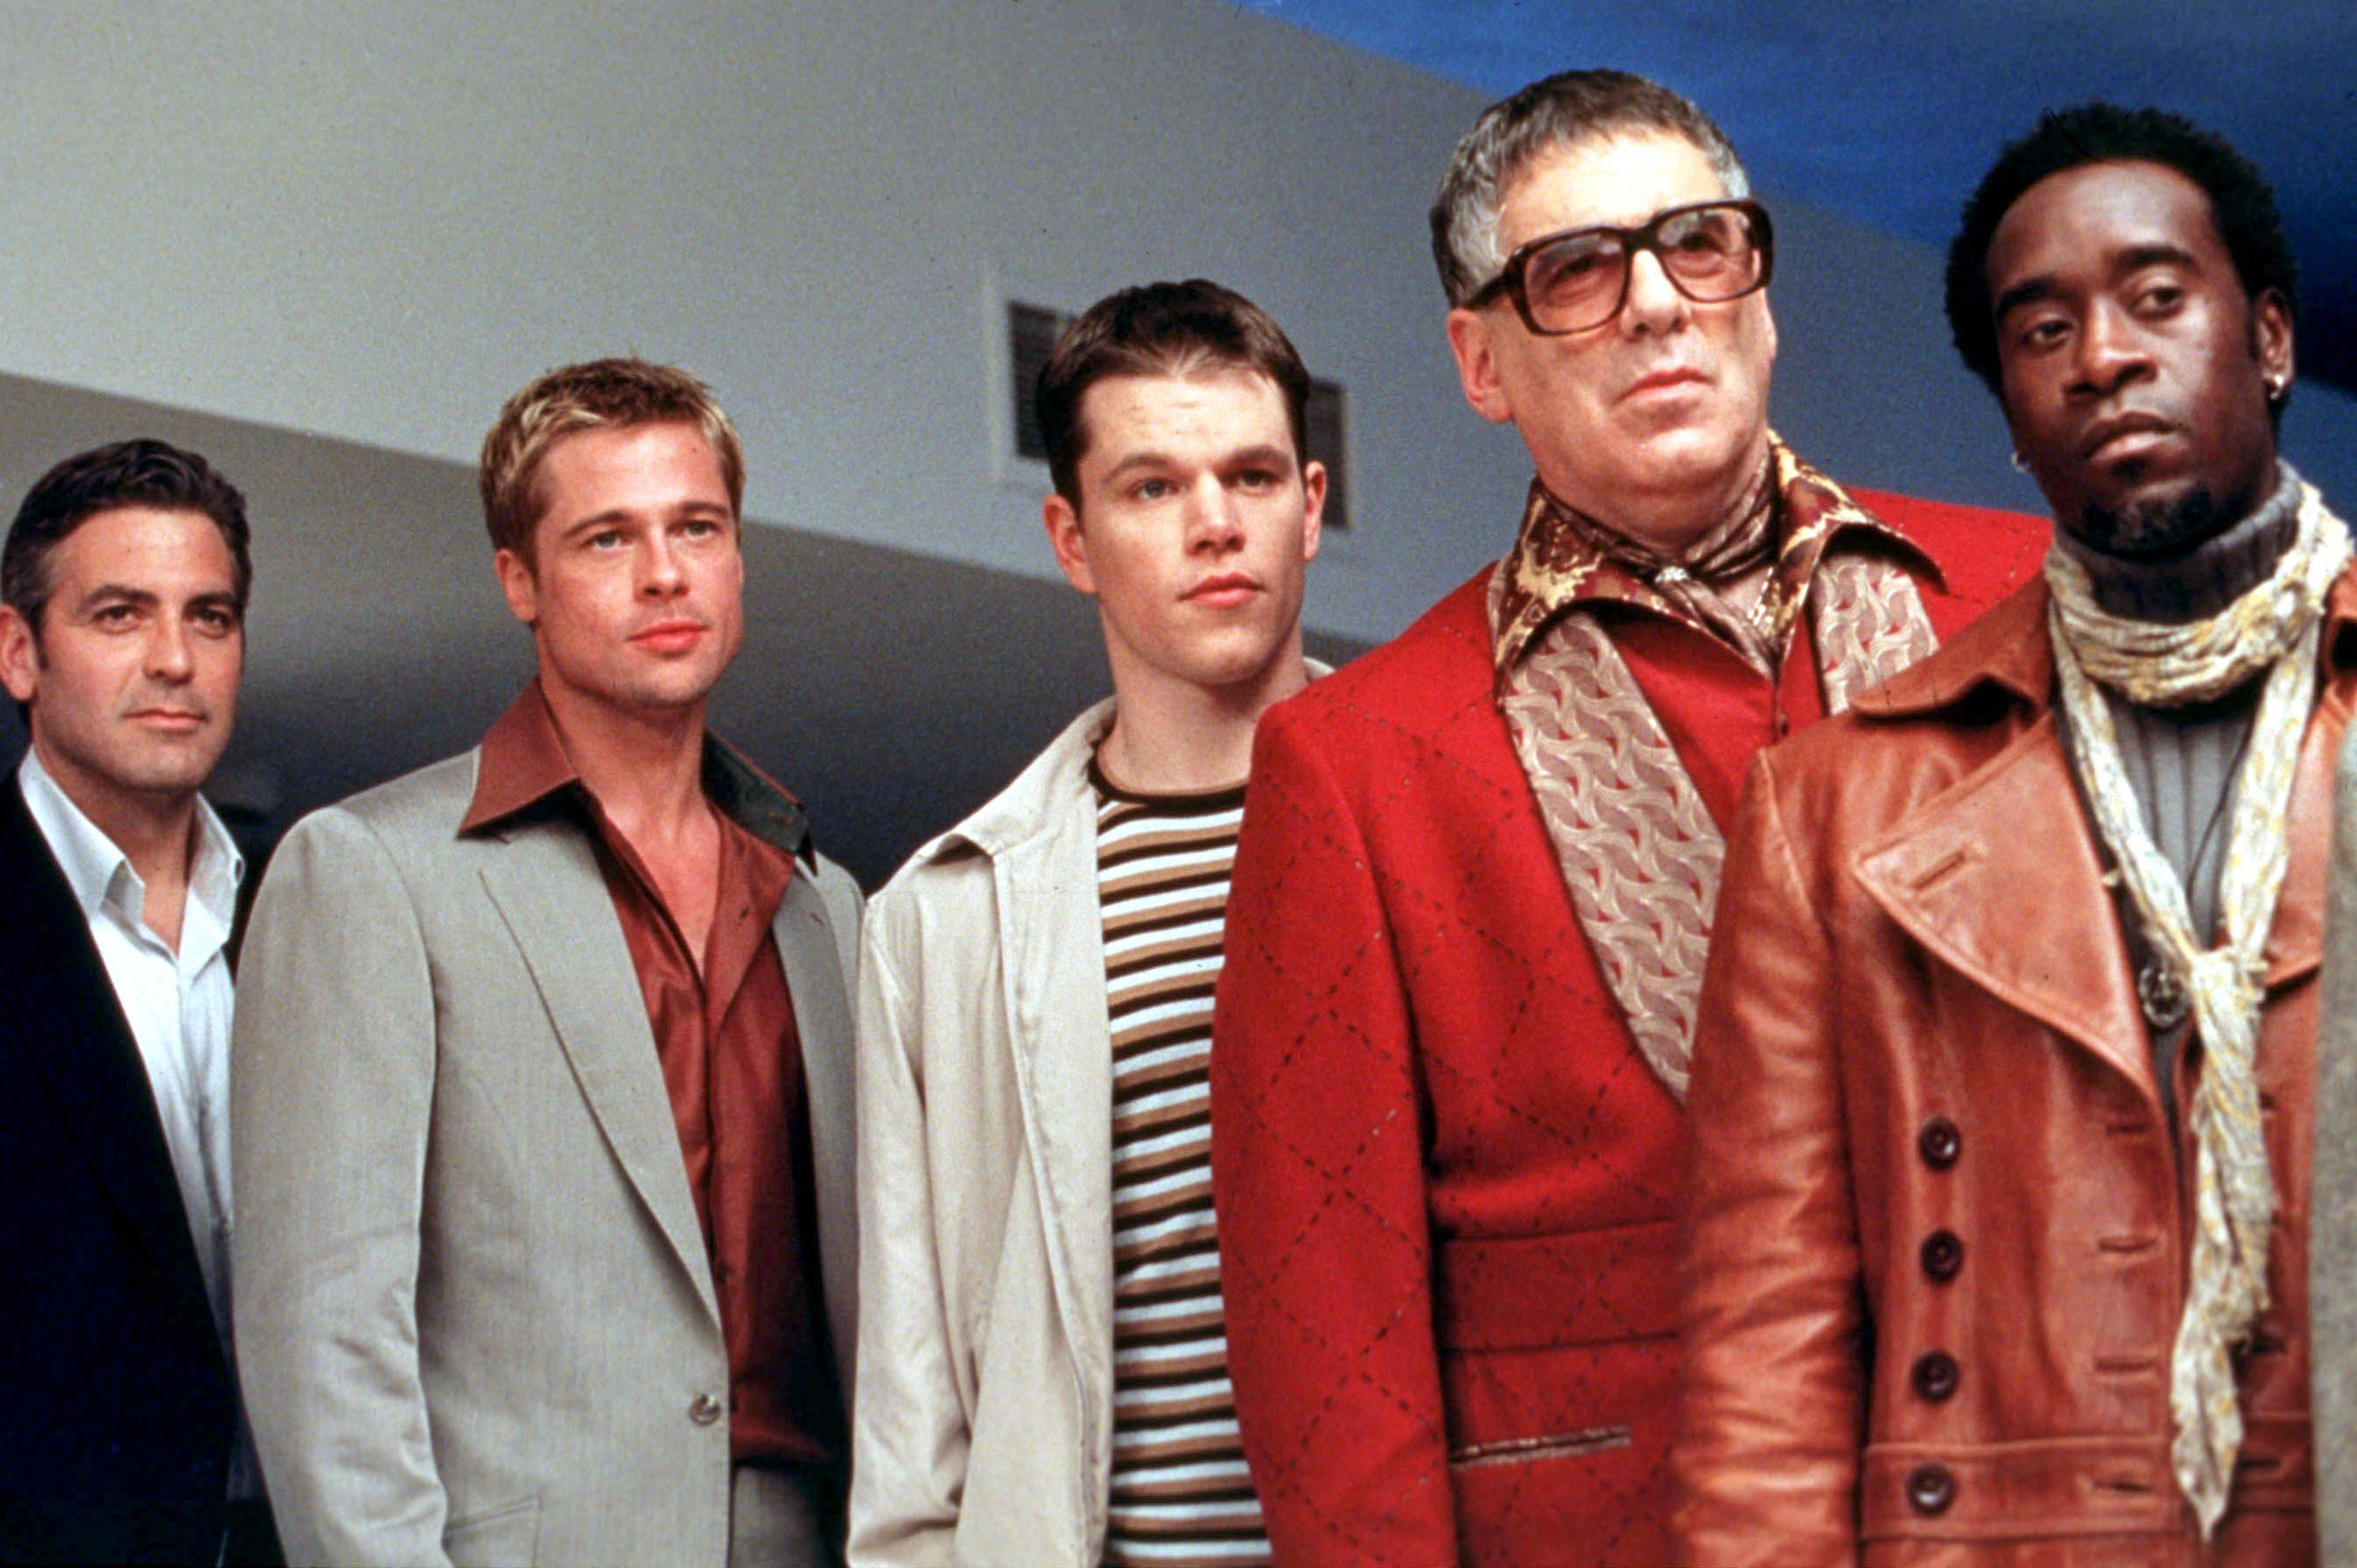 The Ocean's Eleven team. Matt Damon, I'm looking at you.